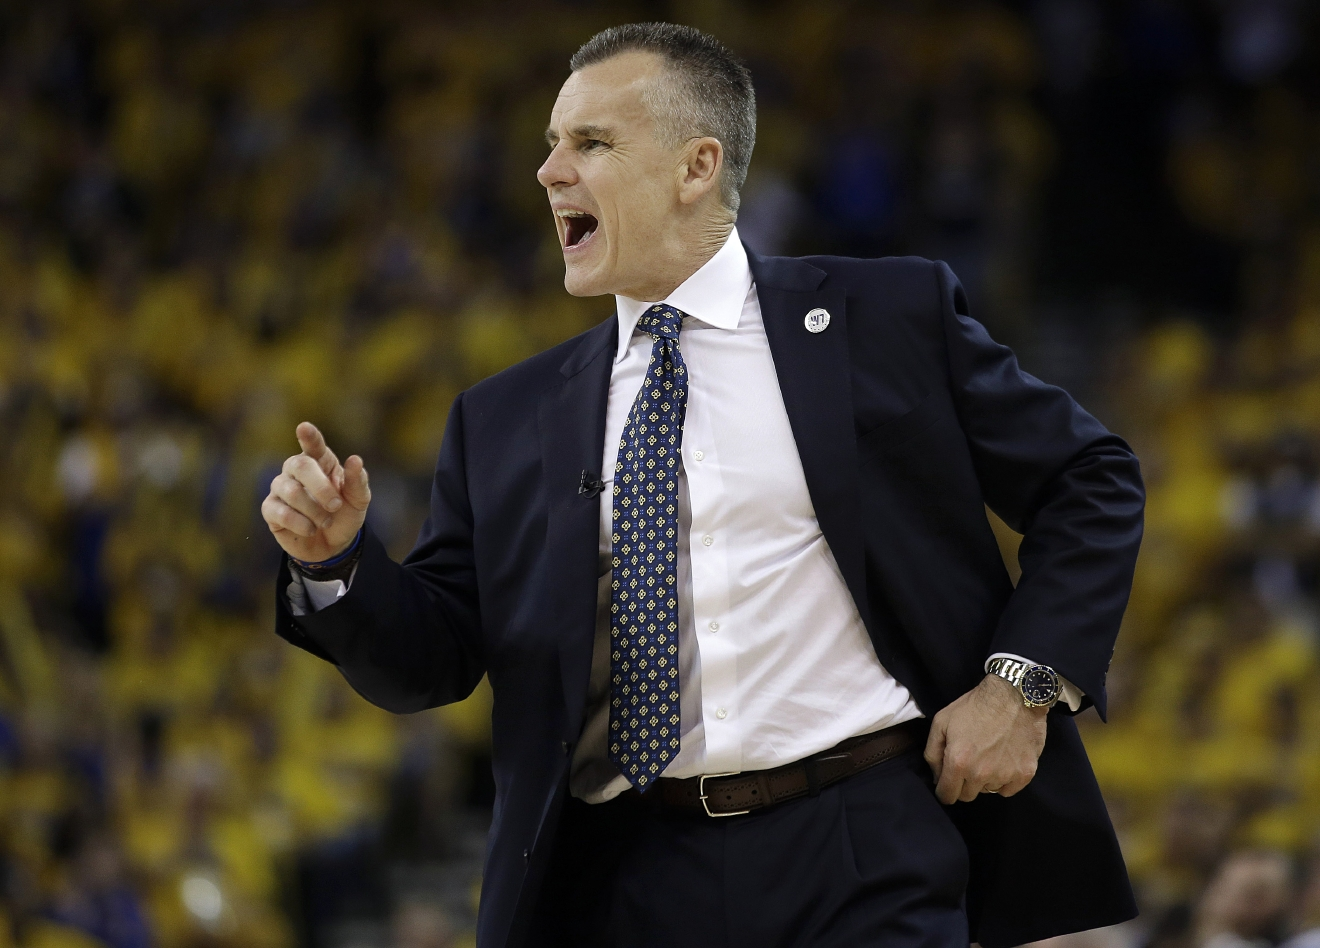 FILE - In this May 18, 2016, file photo, Oklahoma City Thunder head coach Billy Donovan yells during the second half of Game 2 of the NBA basketball Western Conference finals against the Golden State Warriors in Oakland, Calif. Donovan is trying to lead the Thunder to a championship as a first-year NBA coach, just as Steve Kerr did with Golden State last year. Friends off the court, their teams are 1-1 in the Western Conference finals that resume Sunday night at Oklahoma City.  (AP Photo/Marcio Jose Sanchez, File)